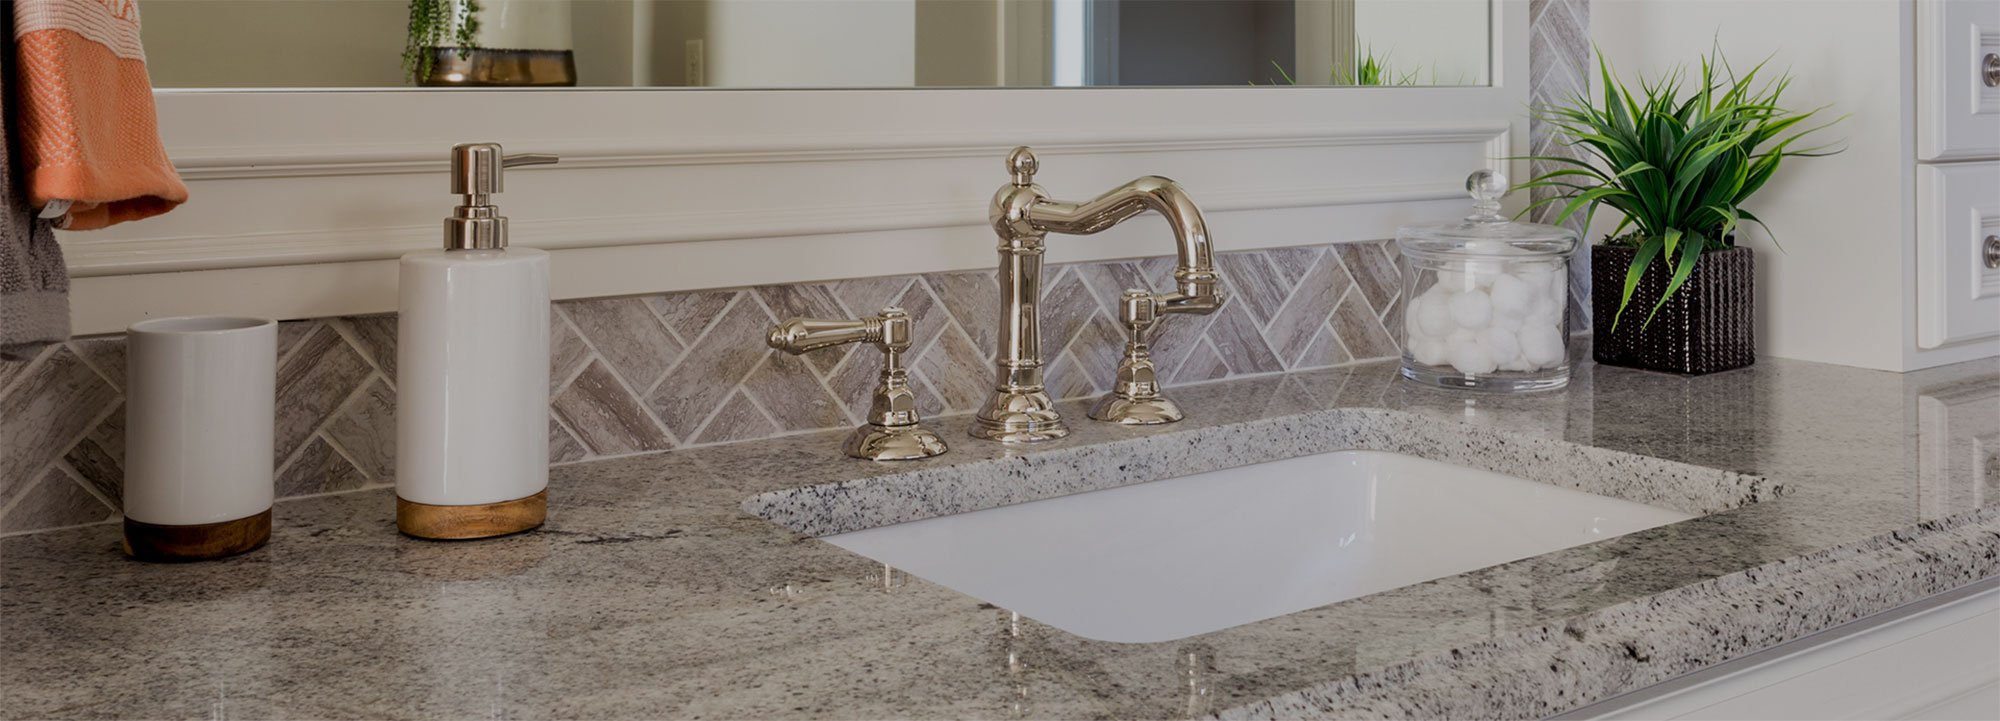 Plumbing Contractor For Cheektowaga Buffalo NY Sewer Cleaning - Buffalo bathroom remodeling